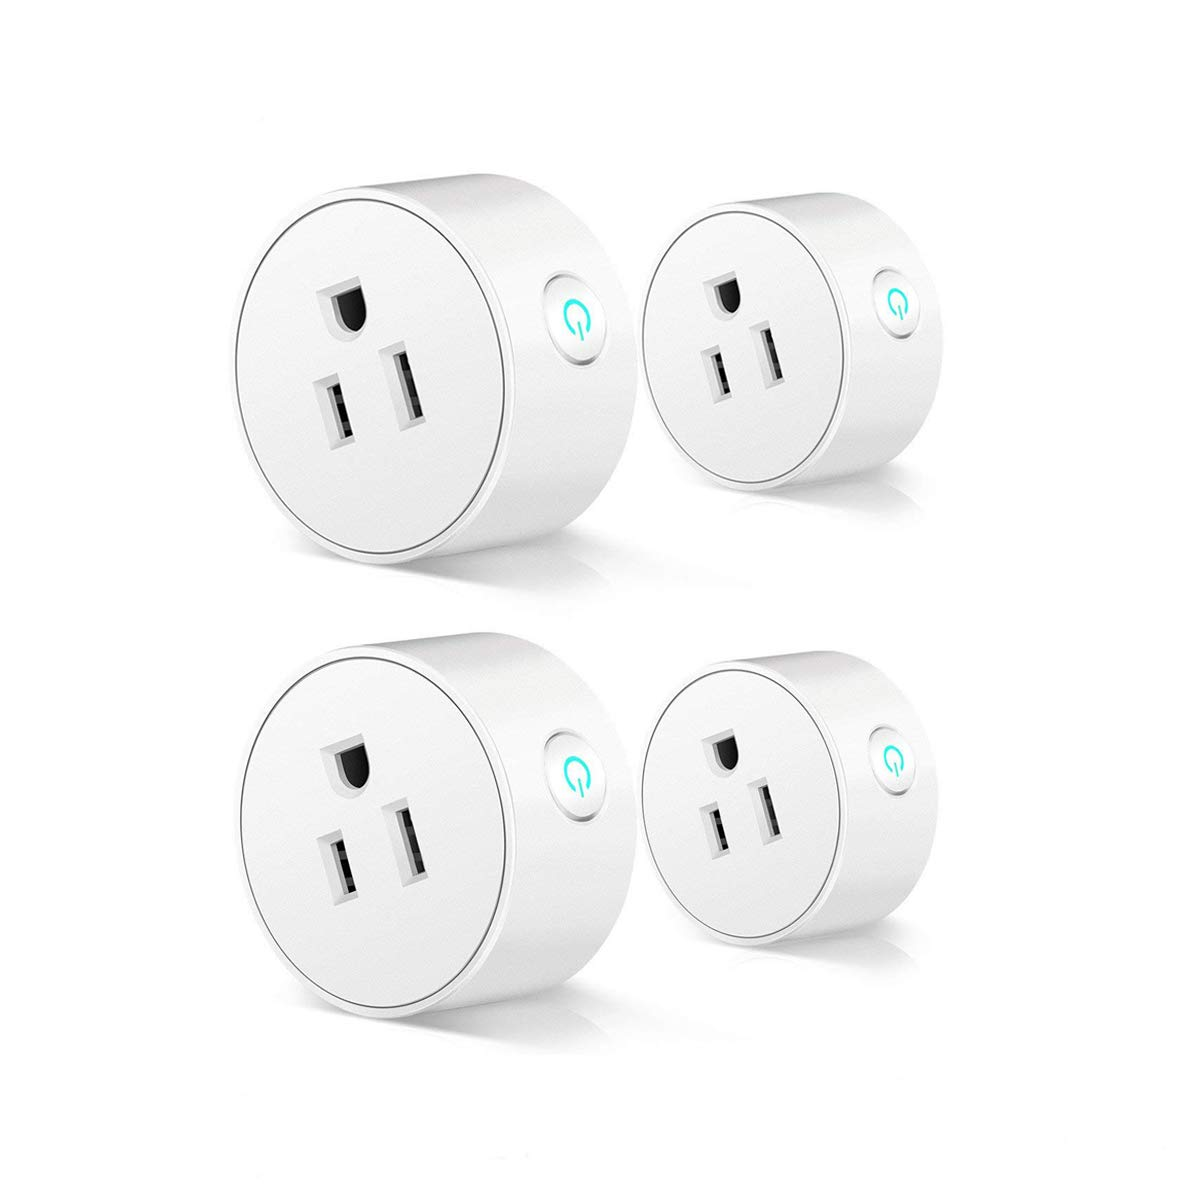 4 Pack Alexa Smart Plug Compatible with Alexa Echo Dot, Smart APP Control from Anywhere Anytime, Smart Home Automation, No Need to Get up and Turn off Light Any More (please set up with 2.4G WiFi)